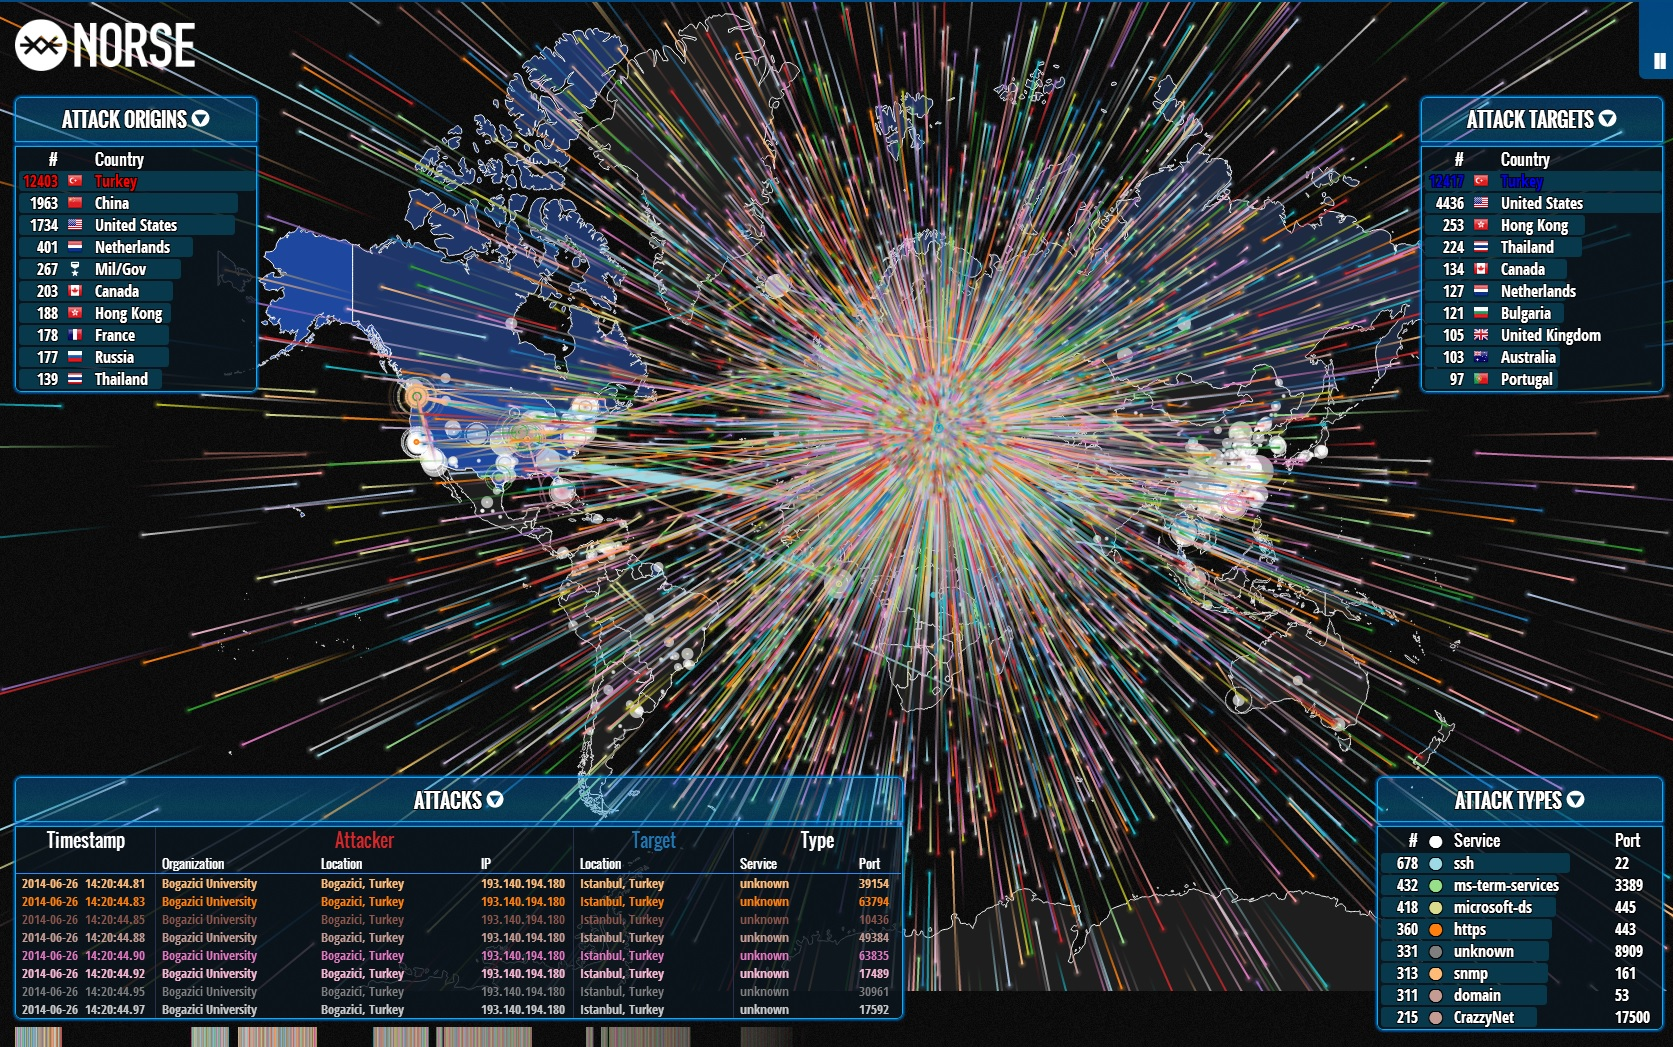 live ddos map with 515679 on How To Watch Worldwide Cyber Attacks likewise Watch Tiny Hedgehog Cleans Itself Looks Annoyingly Adorable Doing It 375201 also Google Veroeffentlicht Live Ddos Landkarte Nicht Ganz Uneigennuetzig additionally Brands Tackle An Online Foe The Meme together with Spellbound By Maps Tracking Hack Attacks And Cyber Threats In Real Time.